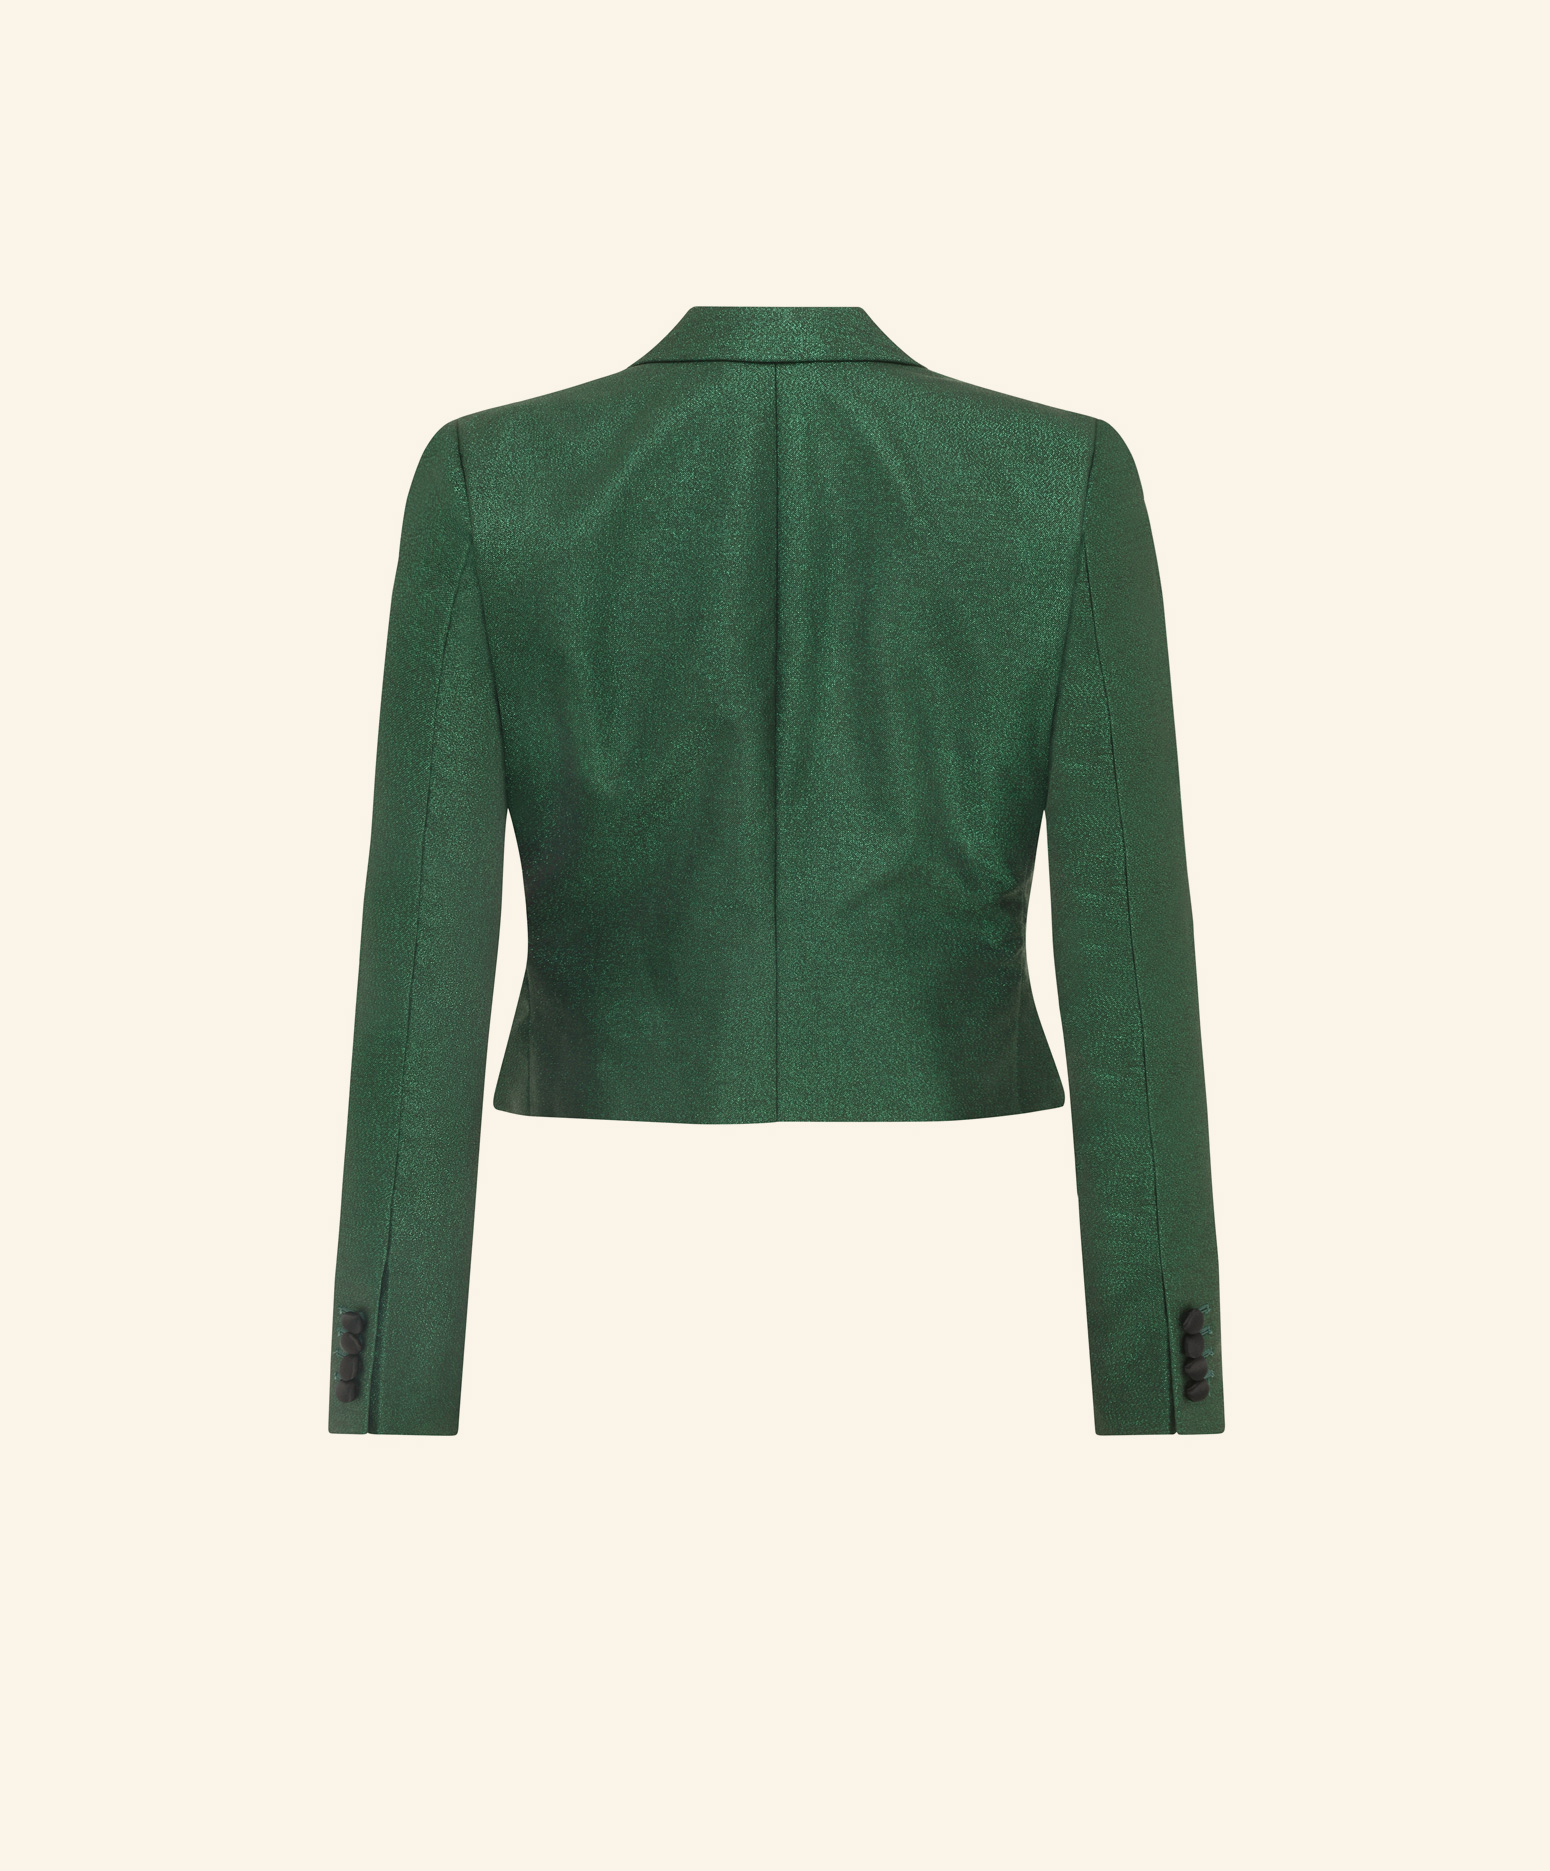 https://www.sannelondon.com/wp-content/uploads/2019/06/cropped-tuxedo-jacket-bk.jpg